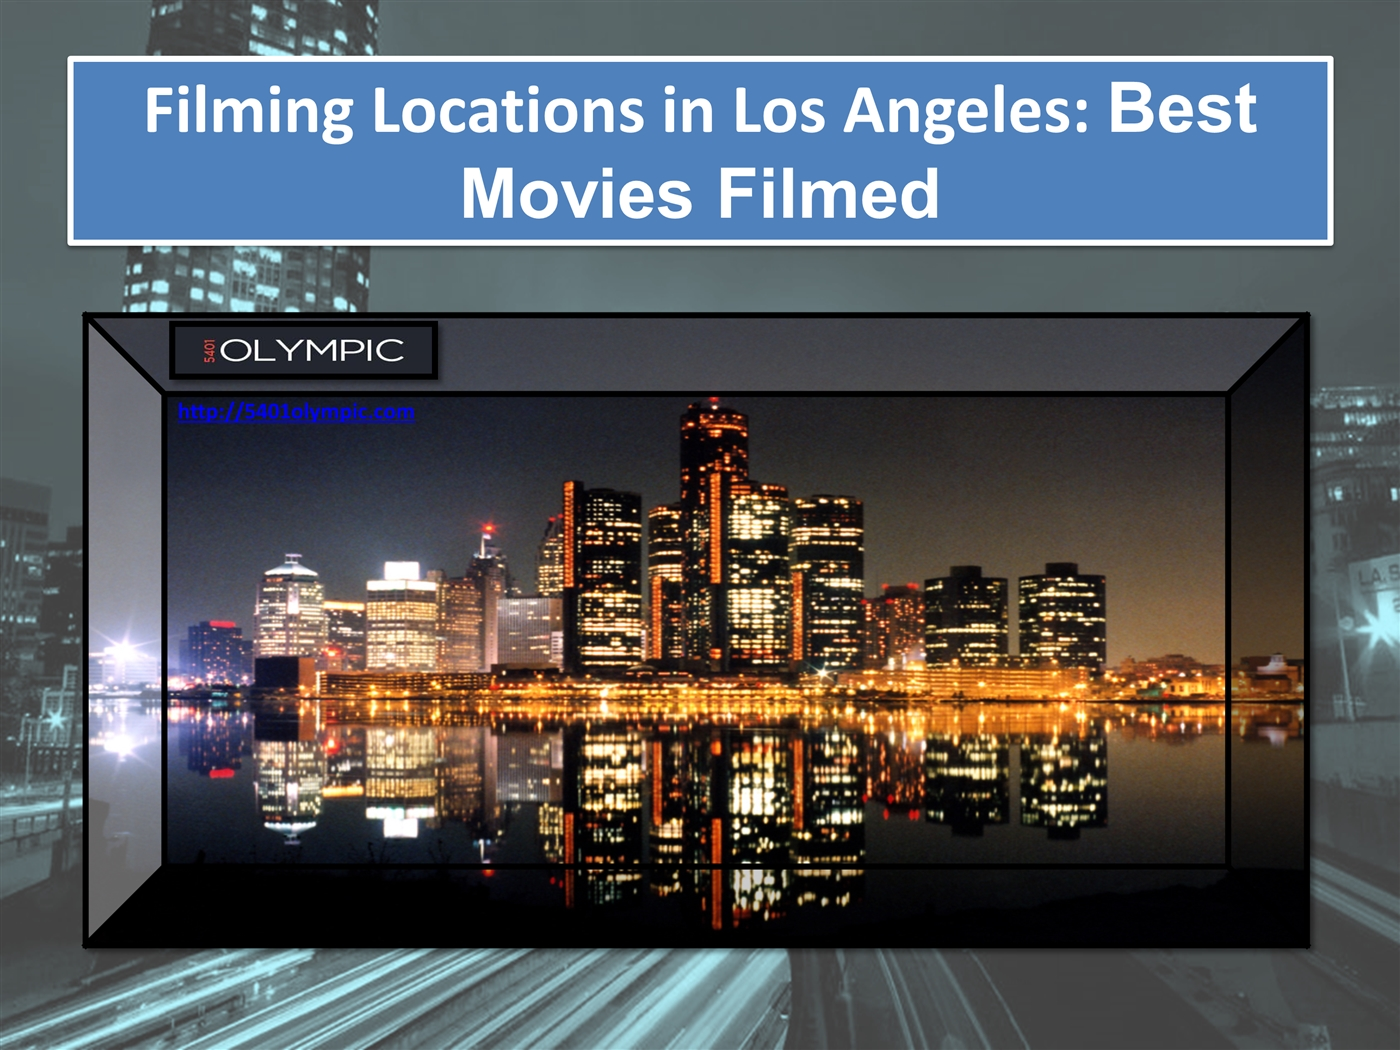 Filming Locations in Los Angeles Best Movies Filmed